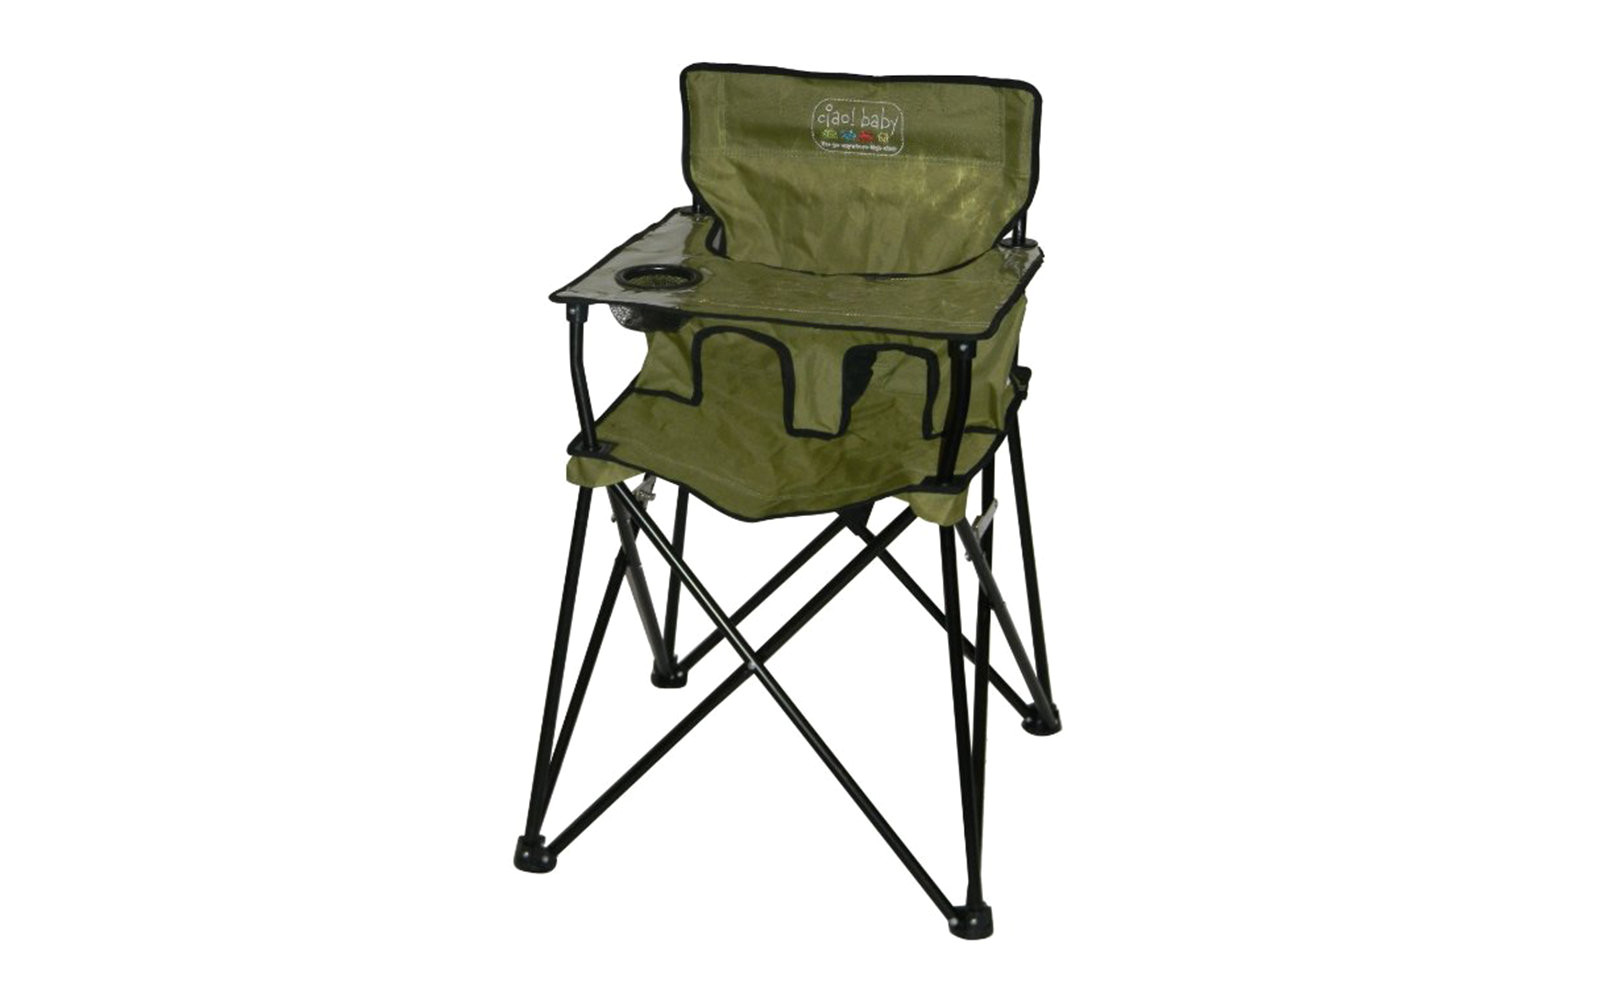 Patio Chair Sling Replacement Canada the Best Folding Camping Chairs Travel Leisure